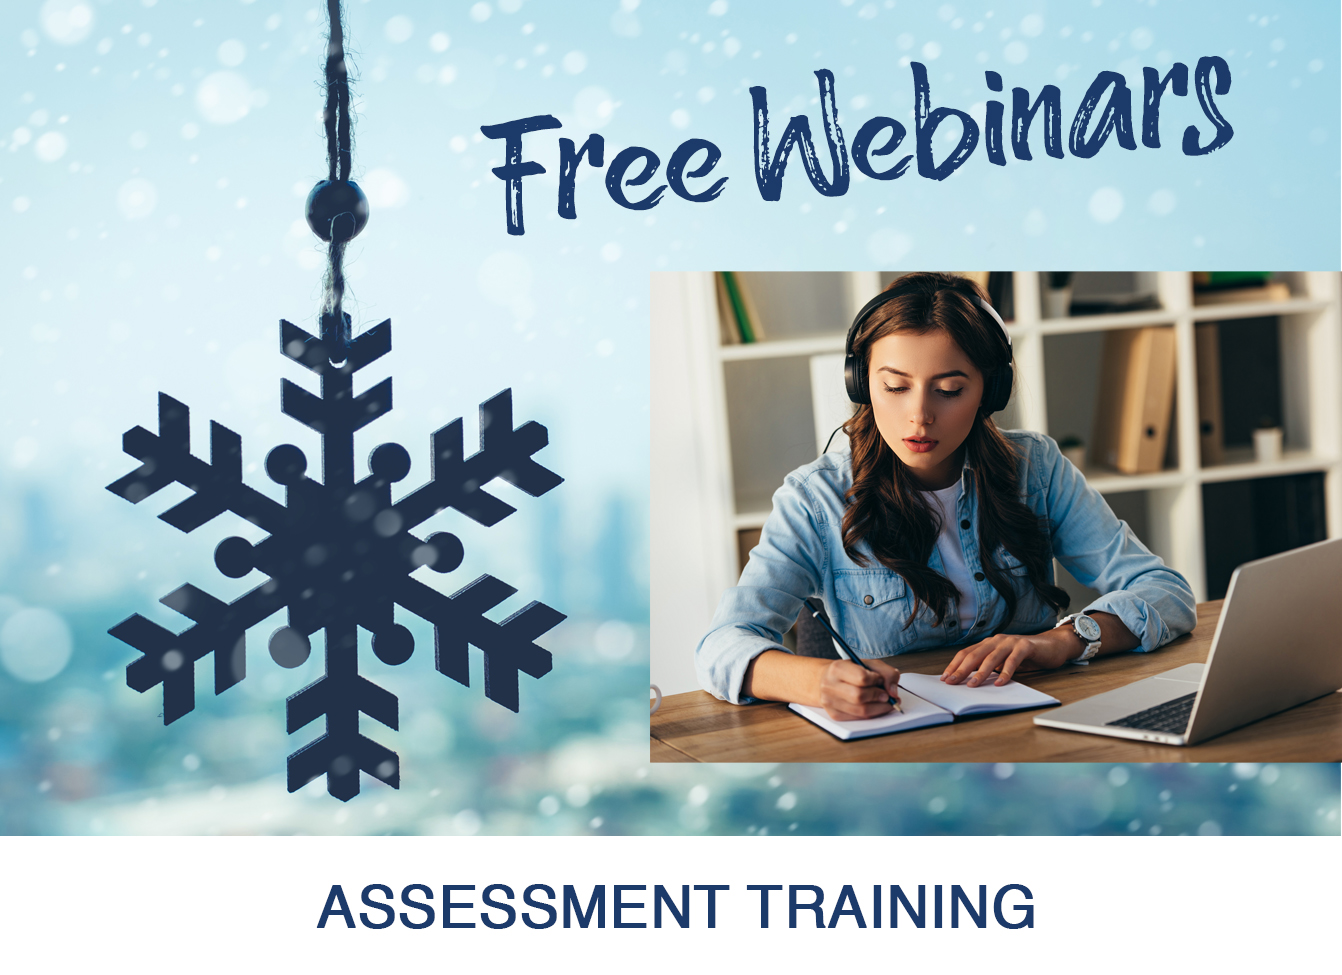 Free Assessment Training Webinars